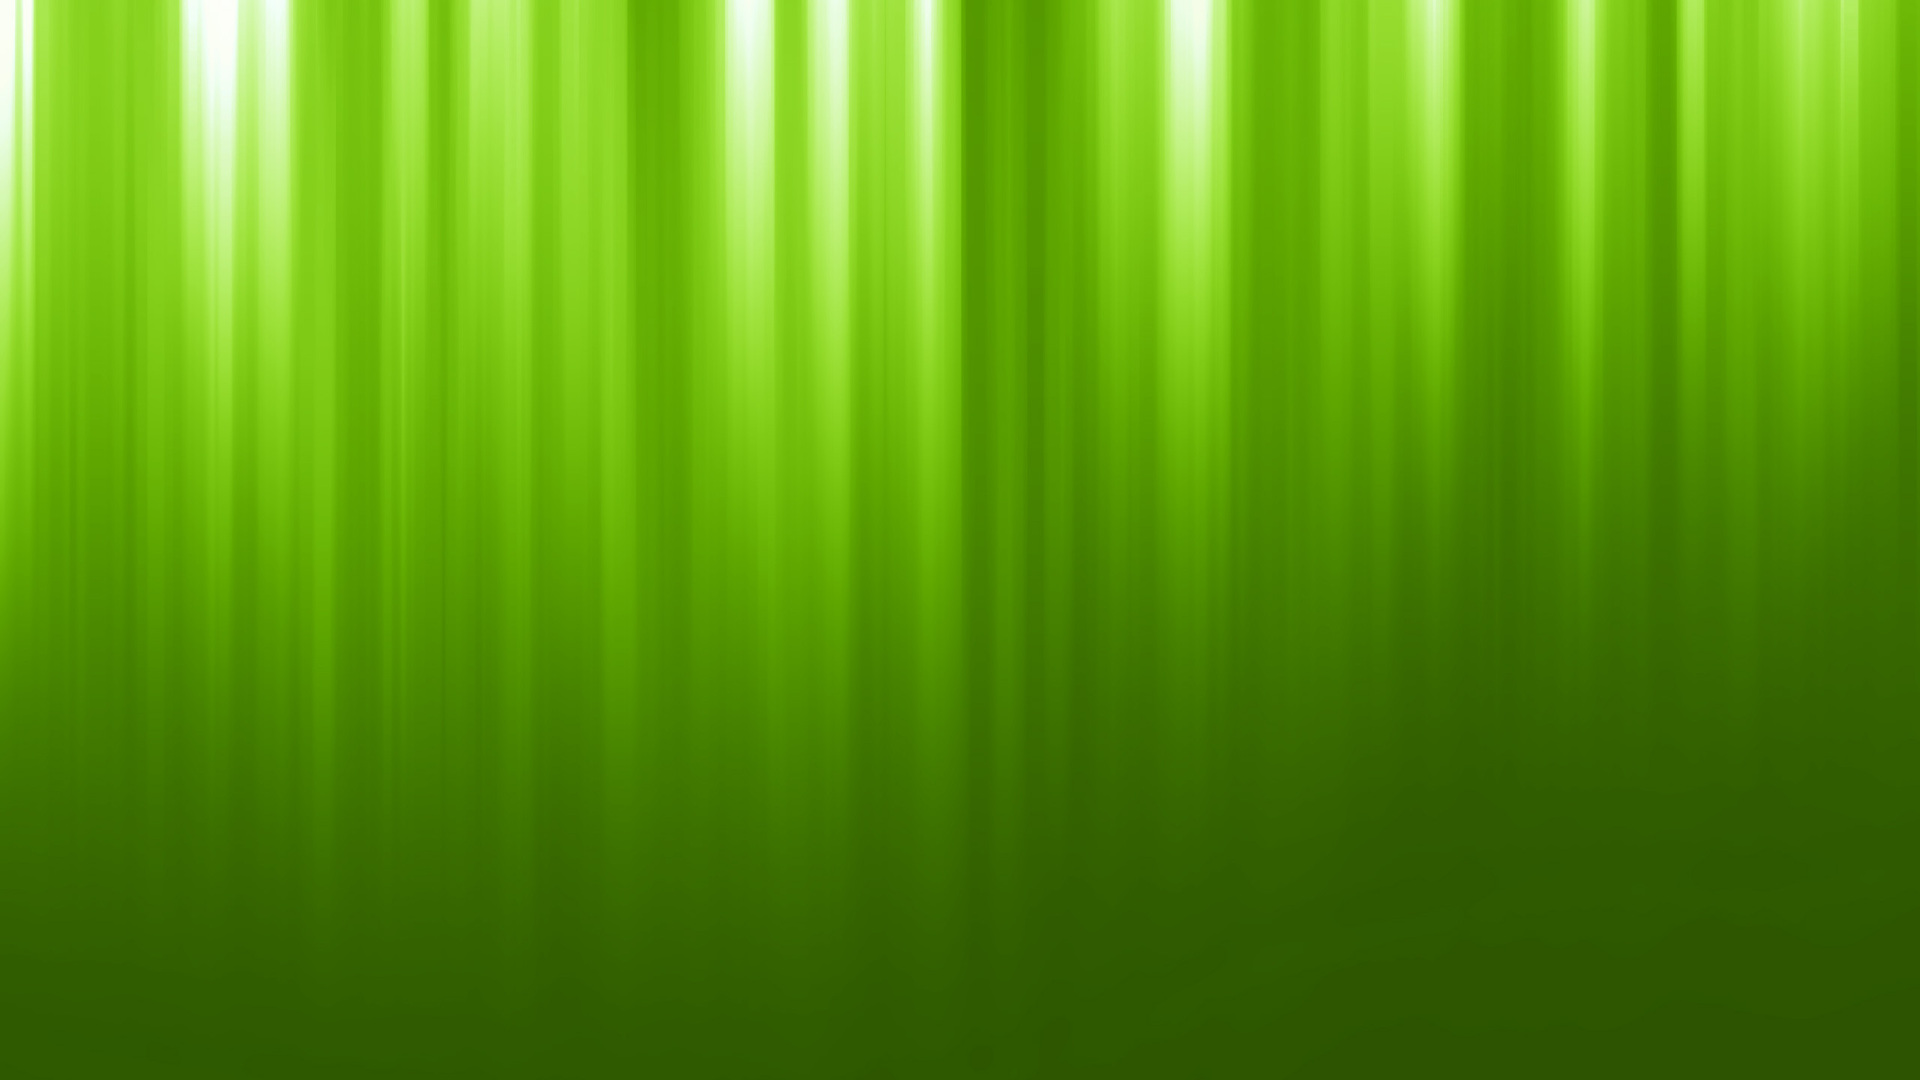 Green Wallpaper HD Wallpaper Background ID